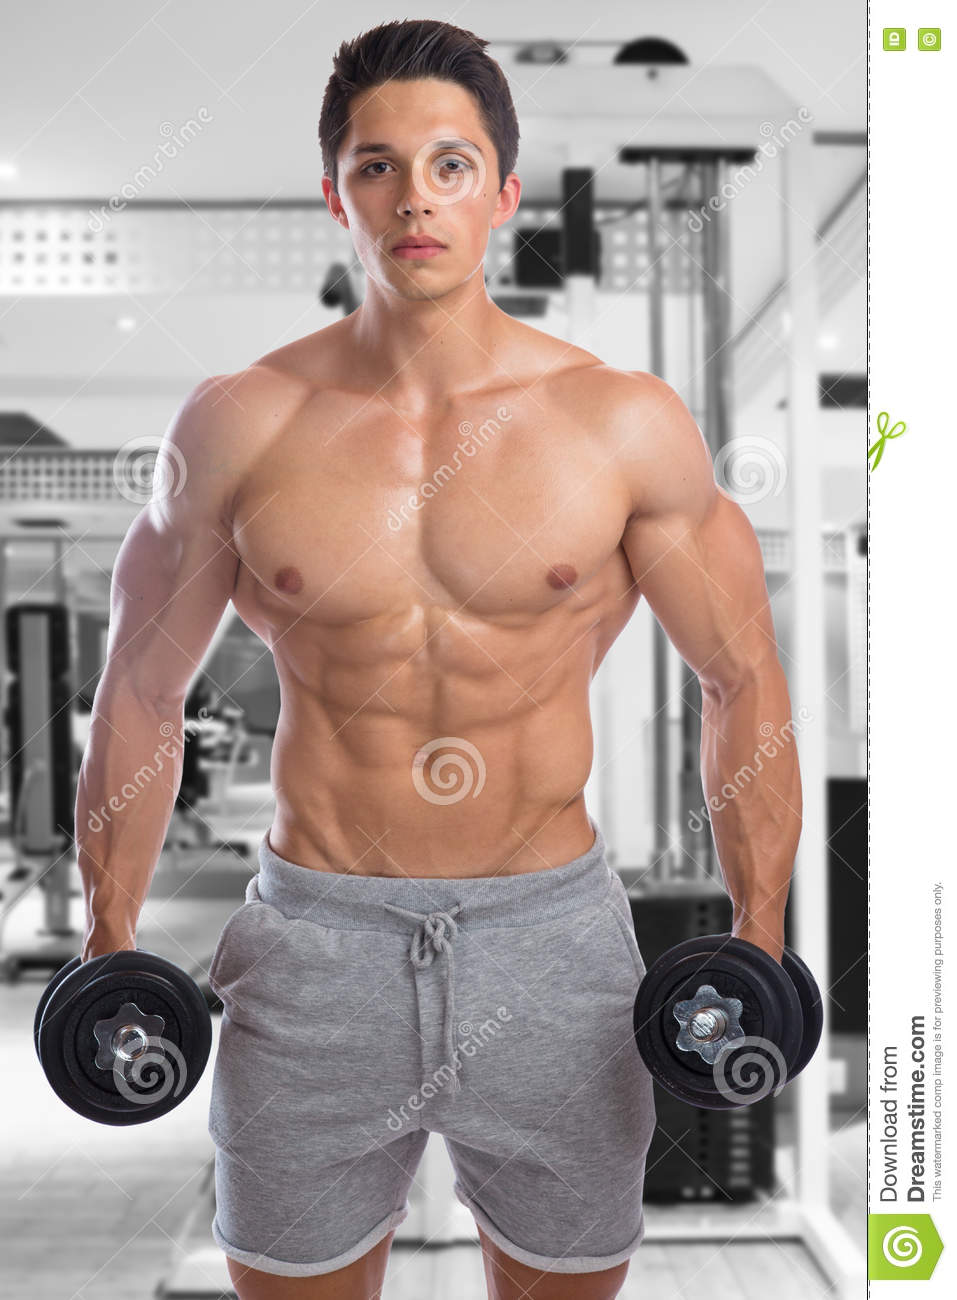 Bodybuilder Bodybuilding Muscles Gym Strong Muscular Young Man D Stock Image Image Of Strong Dumbbell 82145677